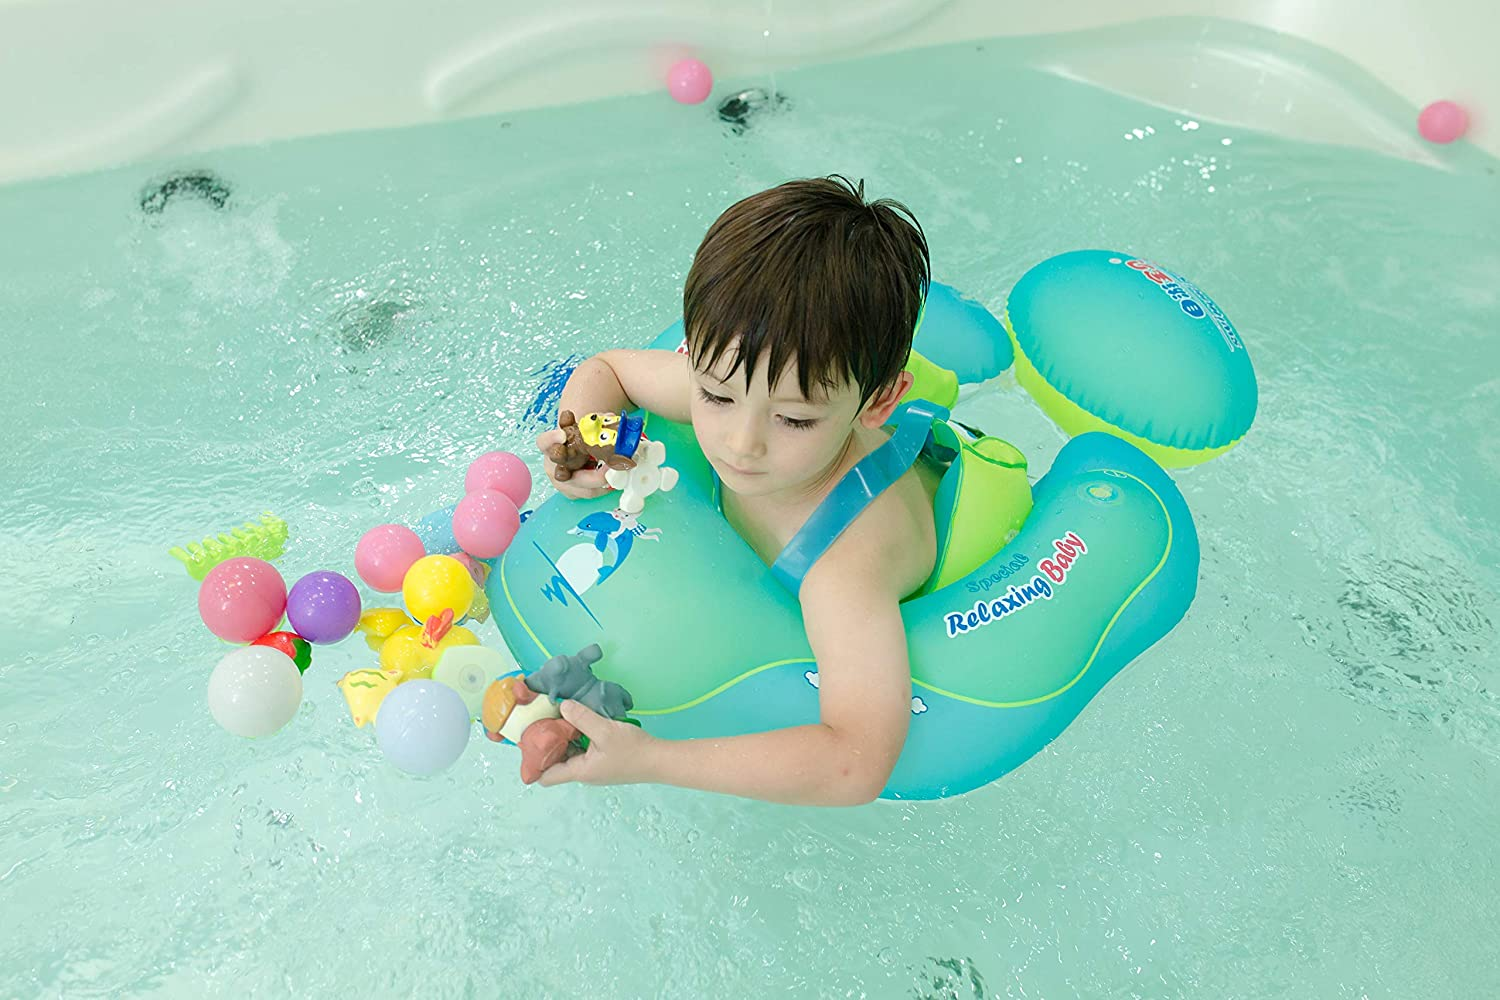 Baby Float for Baby Toddler Floaties Pool Toy for Toddlers Pool Floats for Baby Swim Ring for The Age of 3 Months-6 Years S